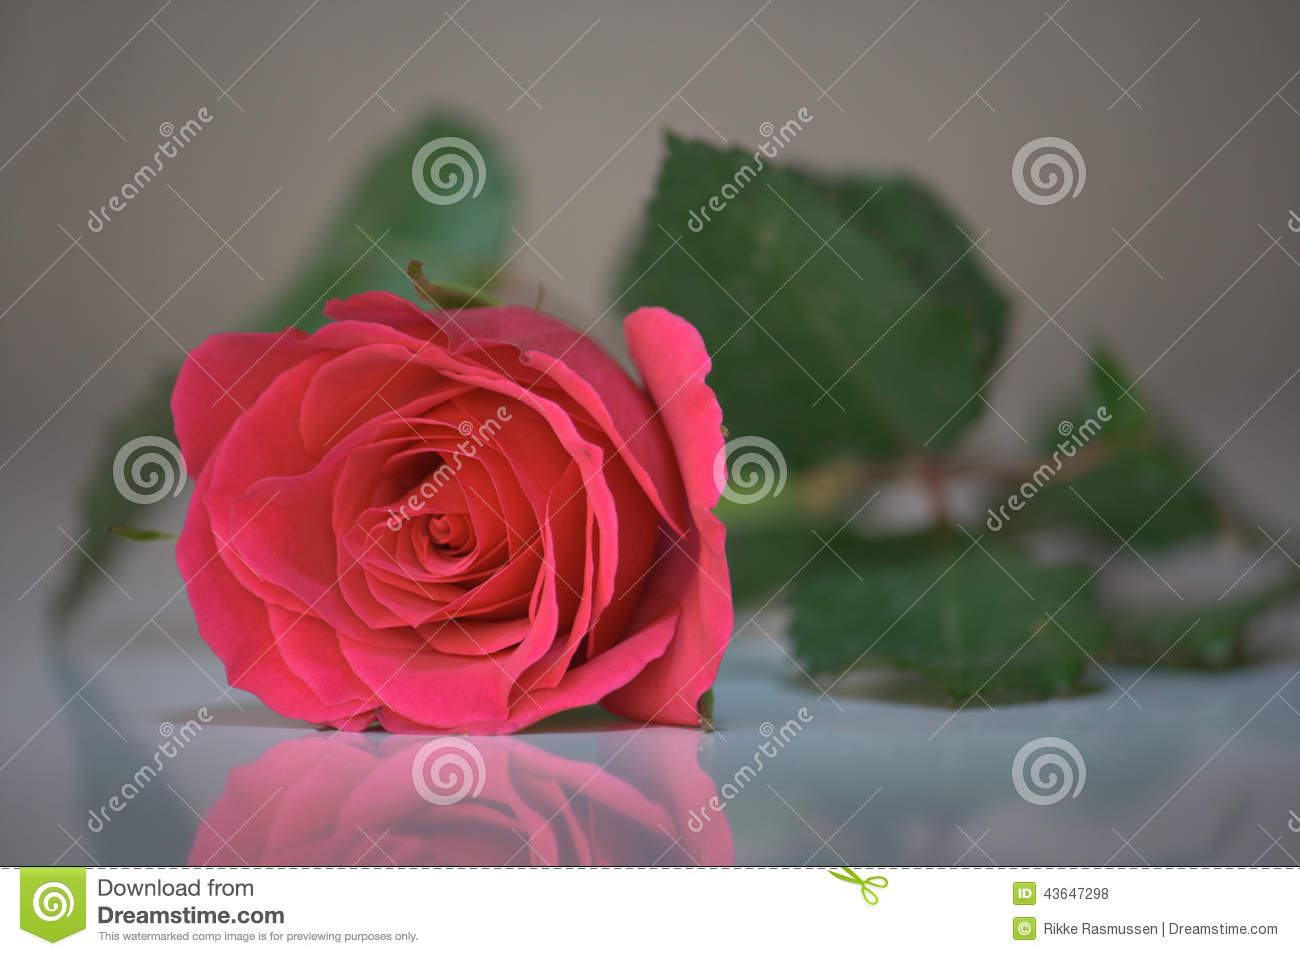 reflections on reading a rose for Isaiah 'twas foretold it, the rose i have in mind with mary we behold it, the virgin mother kind to show god's love aright, she bore to us a  read the reflection.